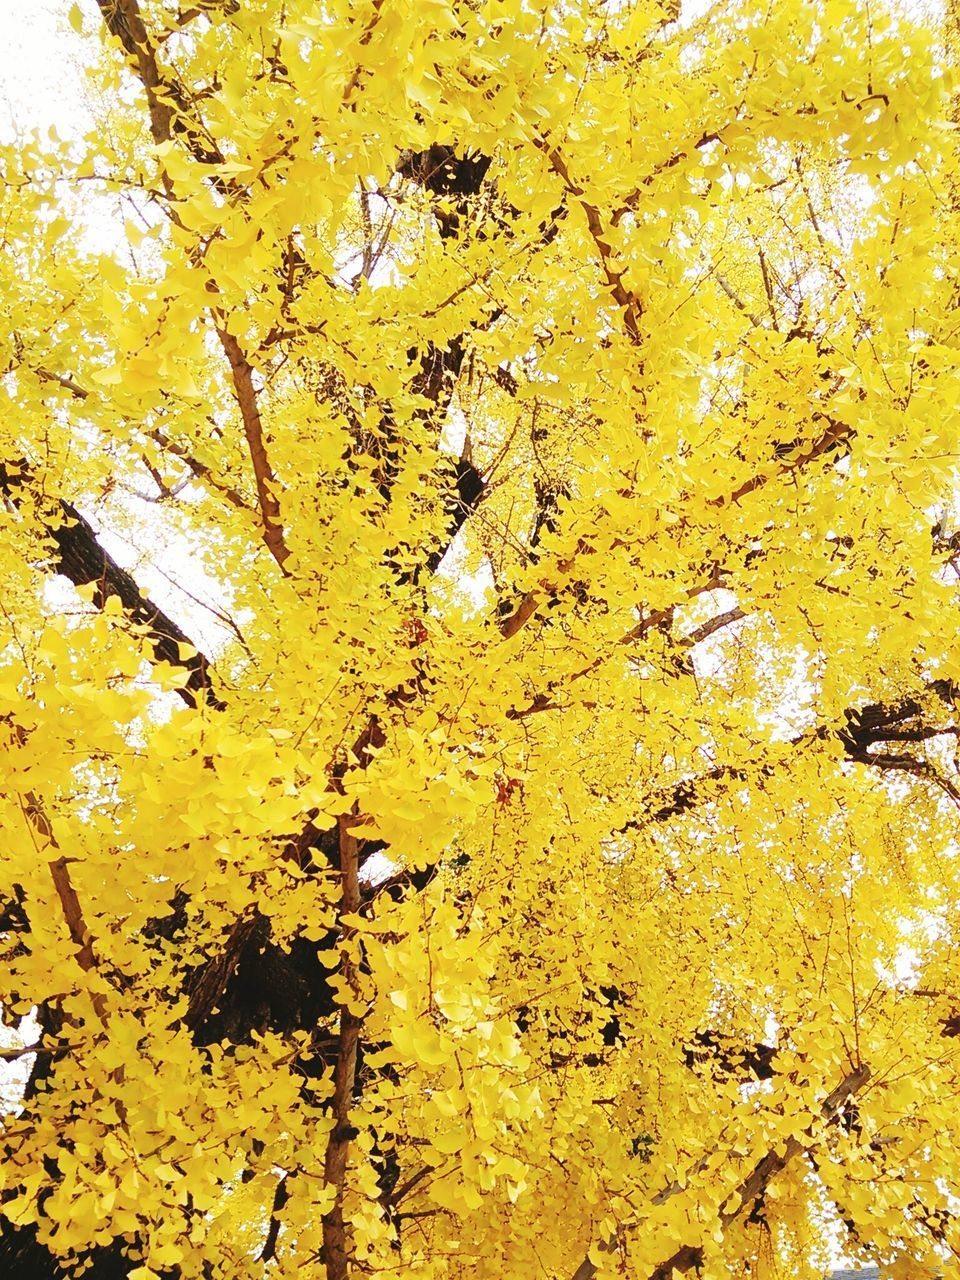 yellow, autumn, leaf, change, growth, nature, tree, no people, close-up, full frame, backgrounds, day, outdoors, fragility, beauty in nature, flower, maple